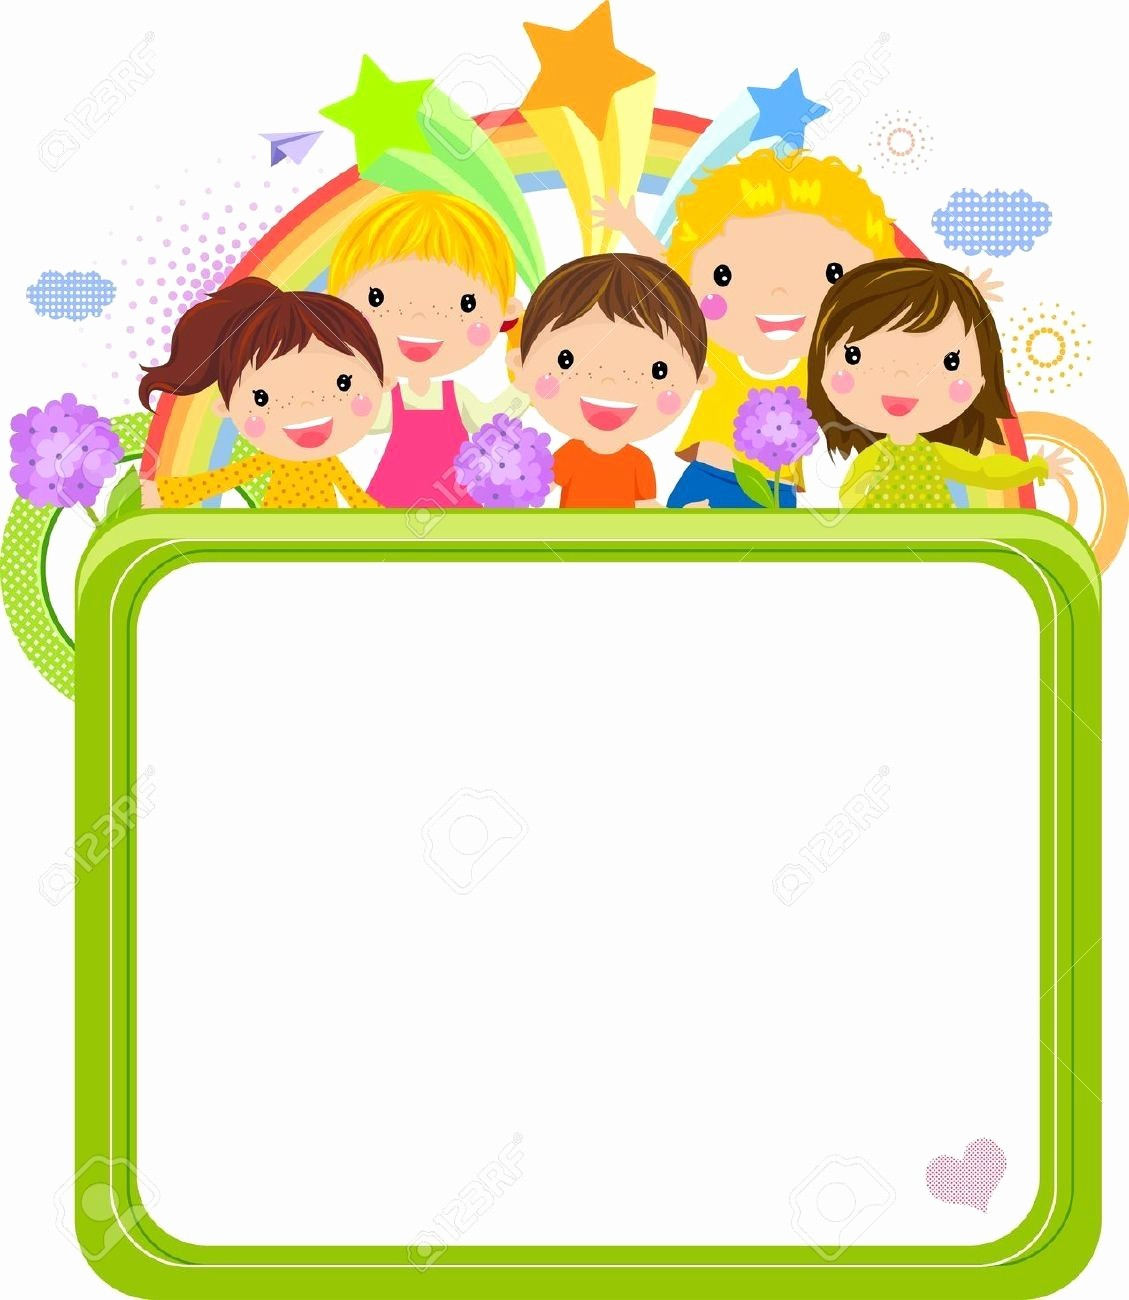 Cute School Backgrounds for Powerpoint Luxury Cute School Border Clipart Background Ppt